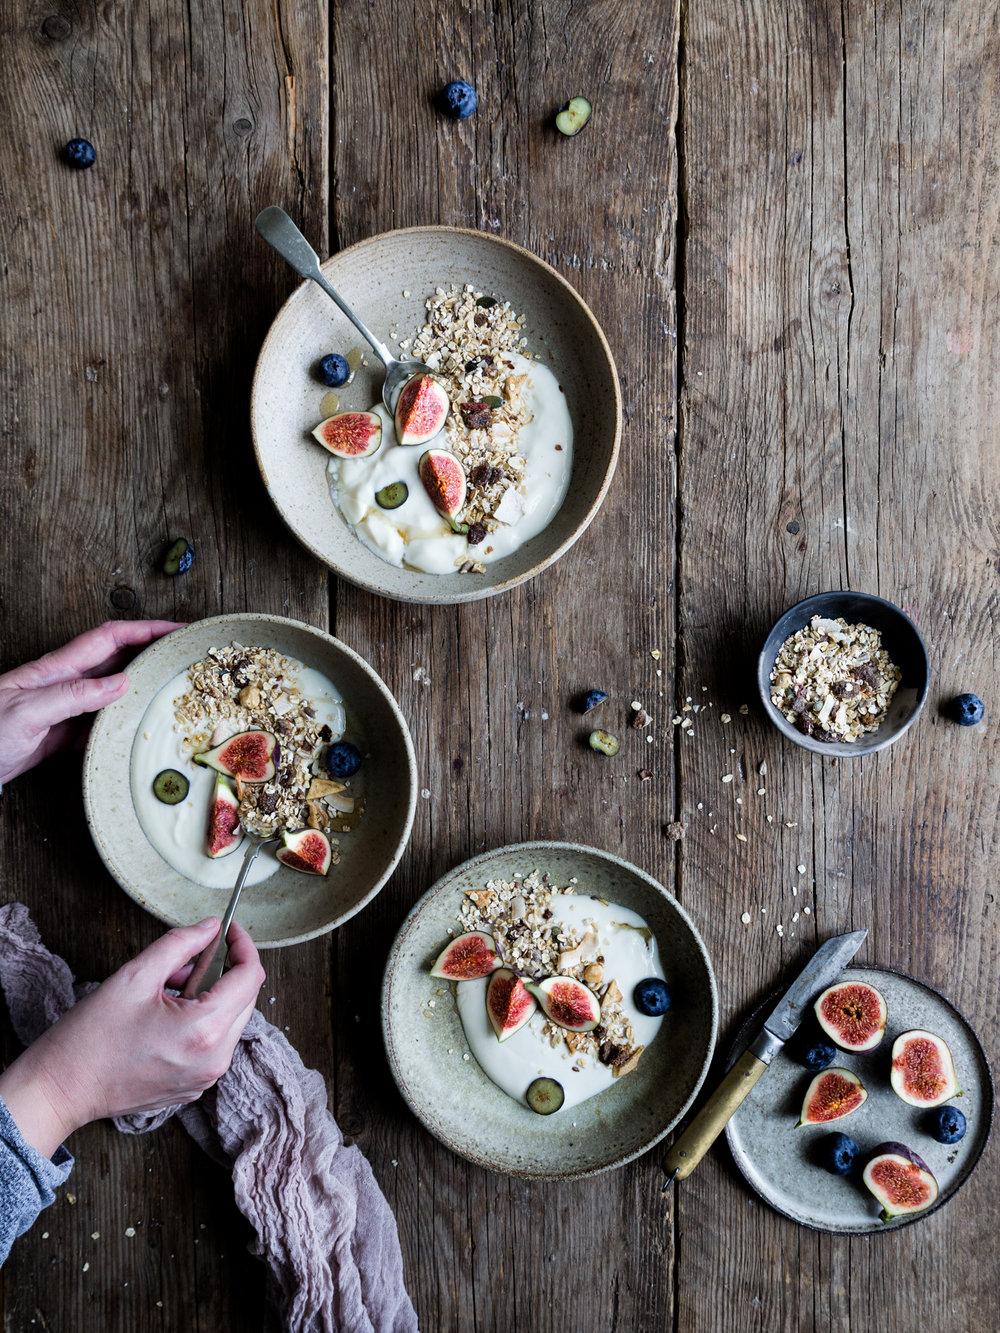 London food photography workshop - with muesli by our sponsor  Dee Muesli